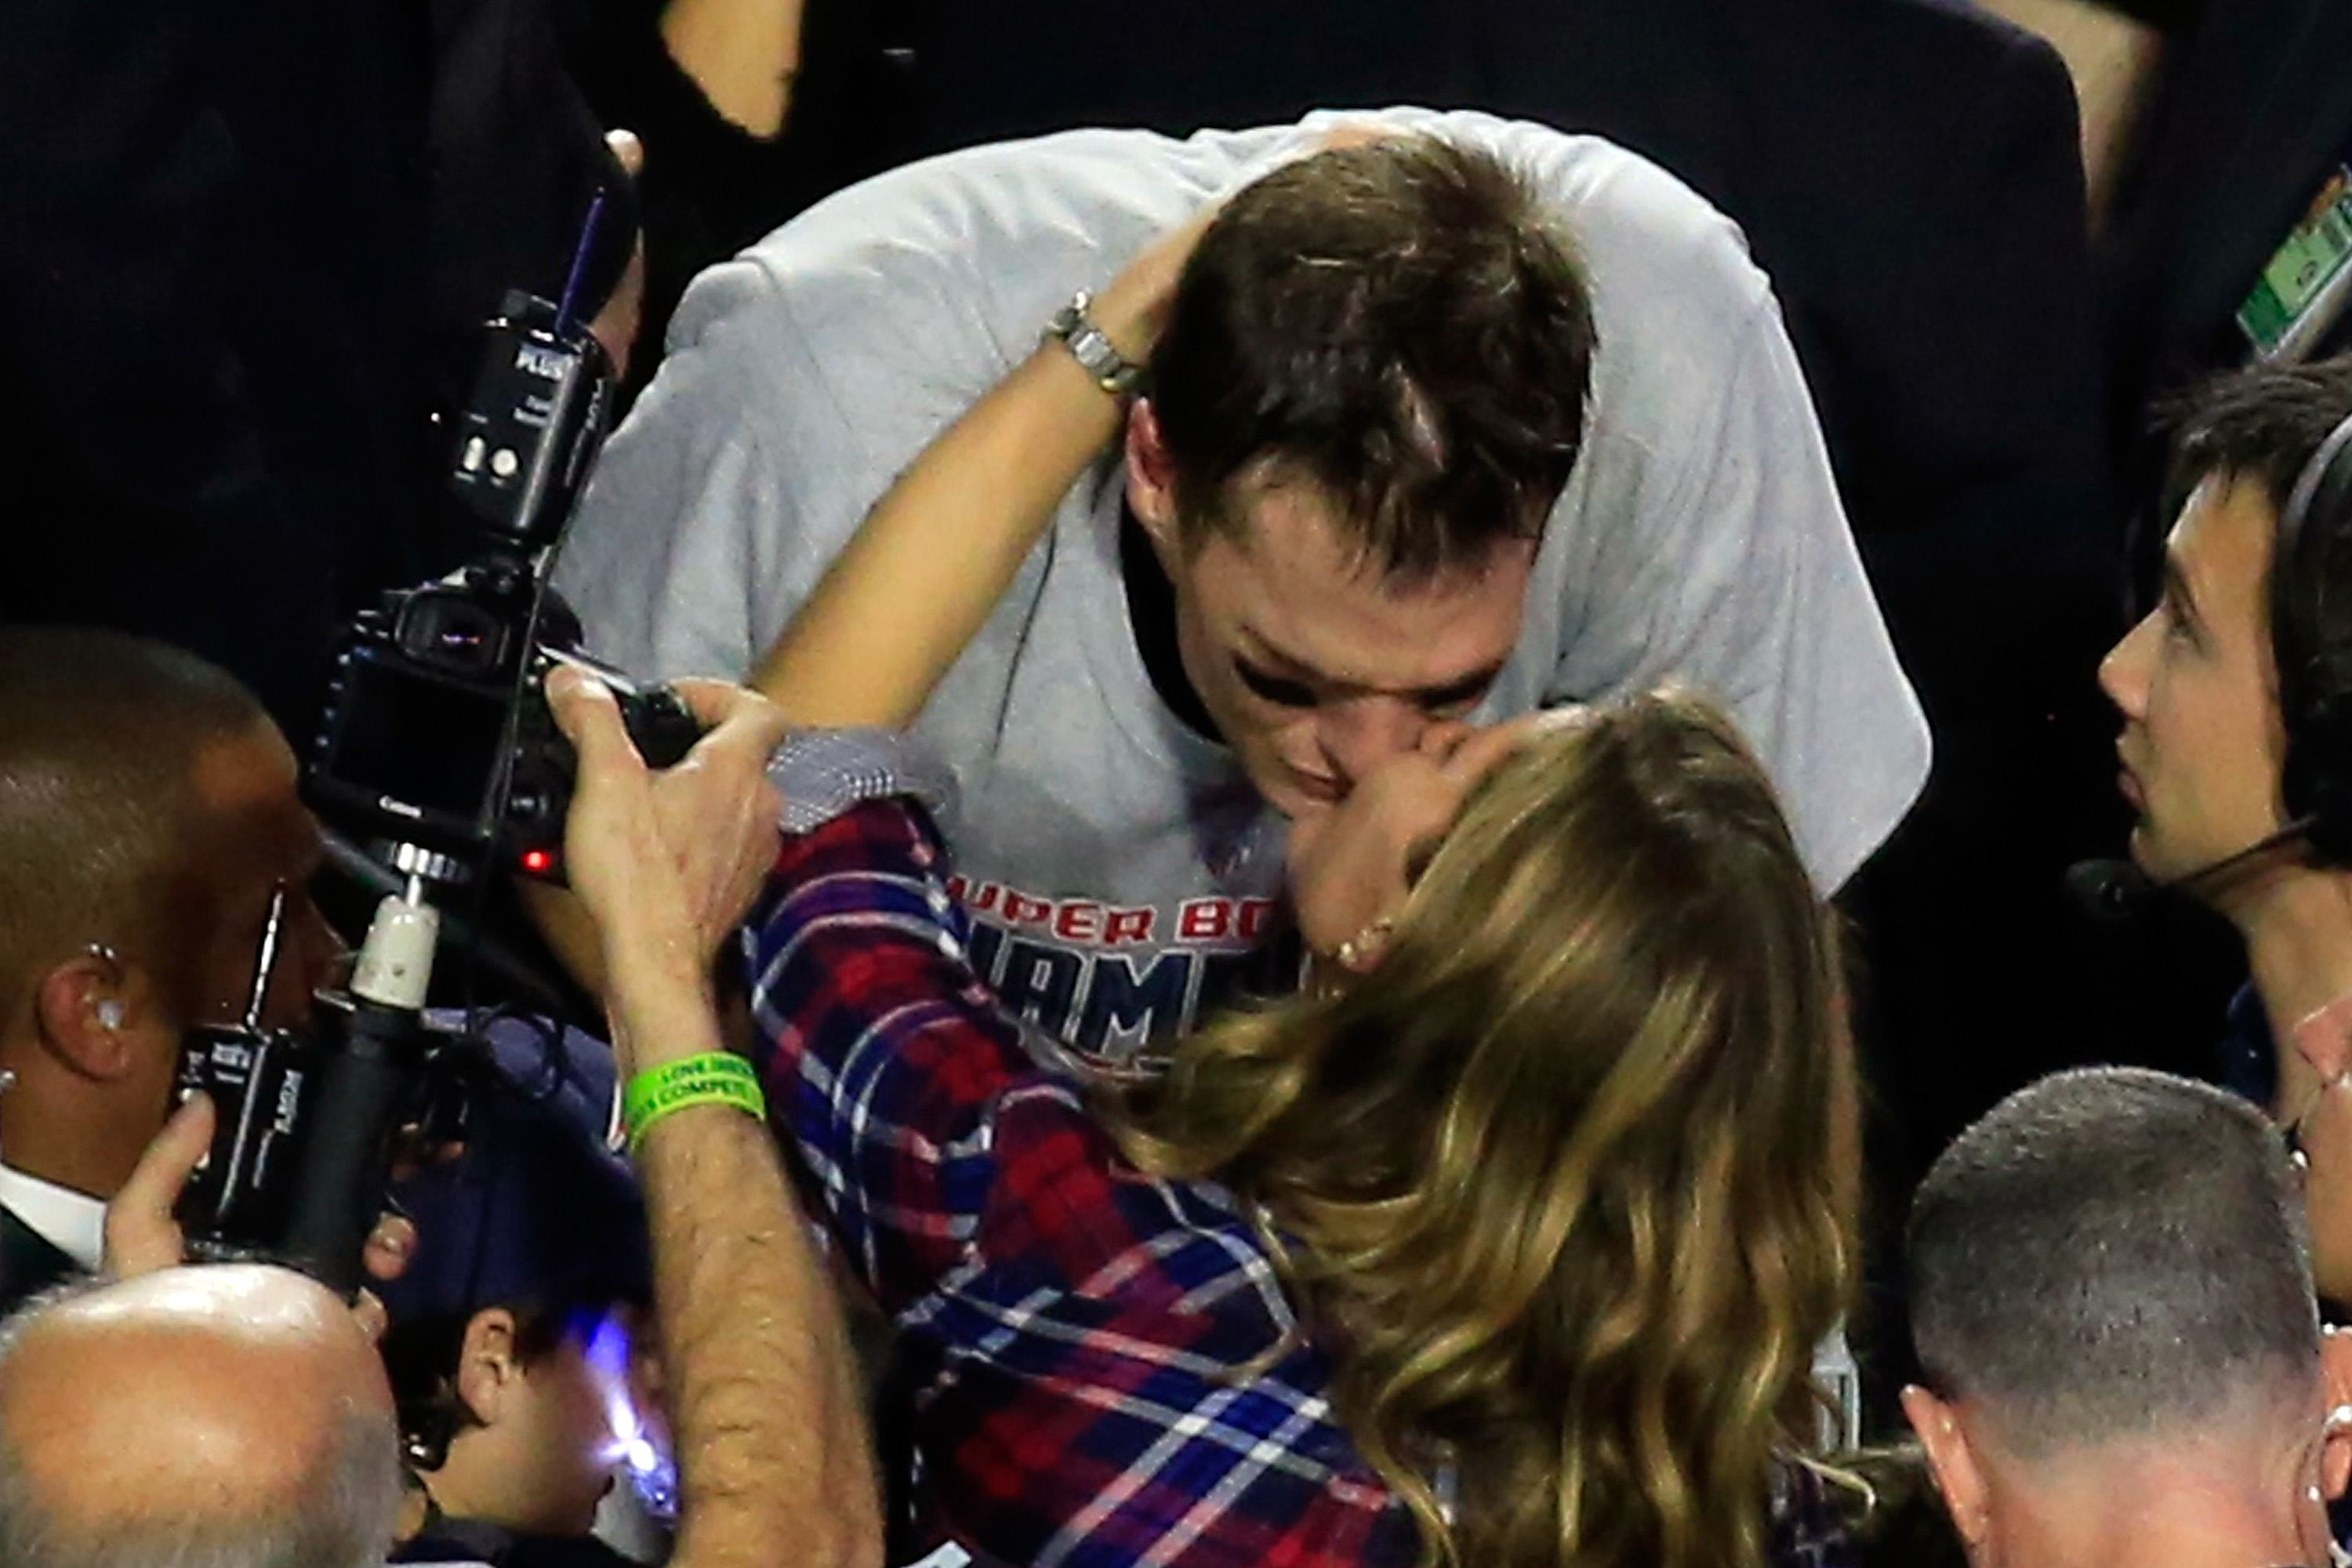 GLENDALE, AZ - FEBRUARY 01:  Tom Brady #12 of the New England Patriots kisses his wife Gisele Bundchen after defeating the Seattle Seahawks during Super Bowl XLIX at University of Phoenix Stadium on February 1, 2015 in Glendale, Arizona. The Patriots defeated the Seahawks 28-24.  (Photo by Jamie Squire/Getty Images)